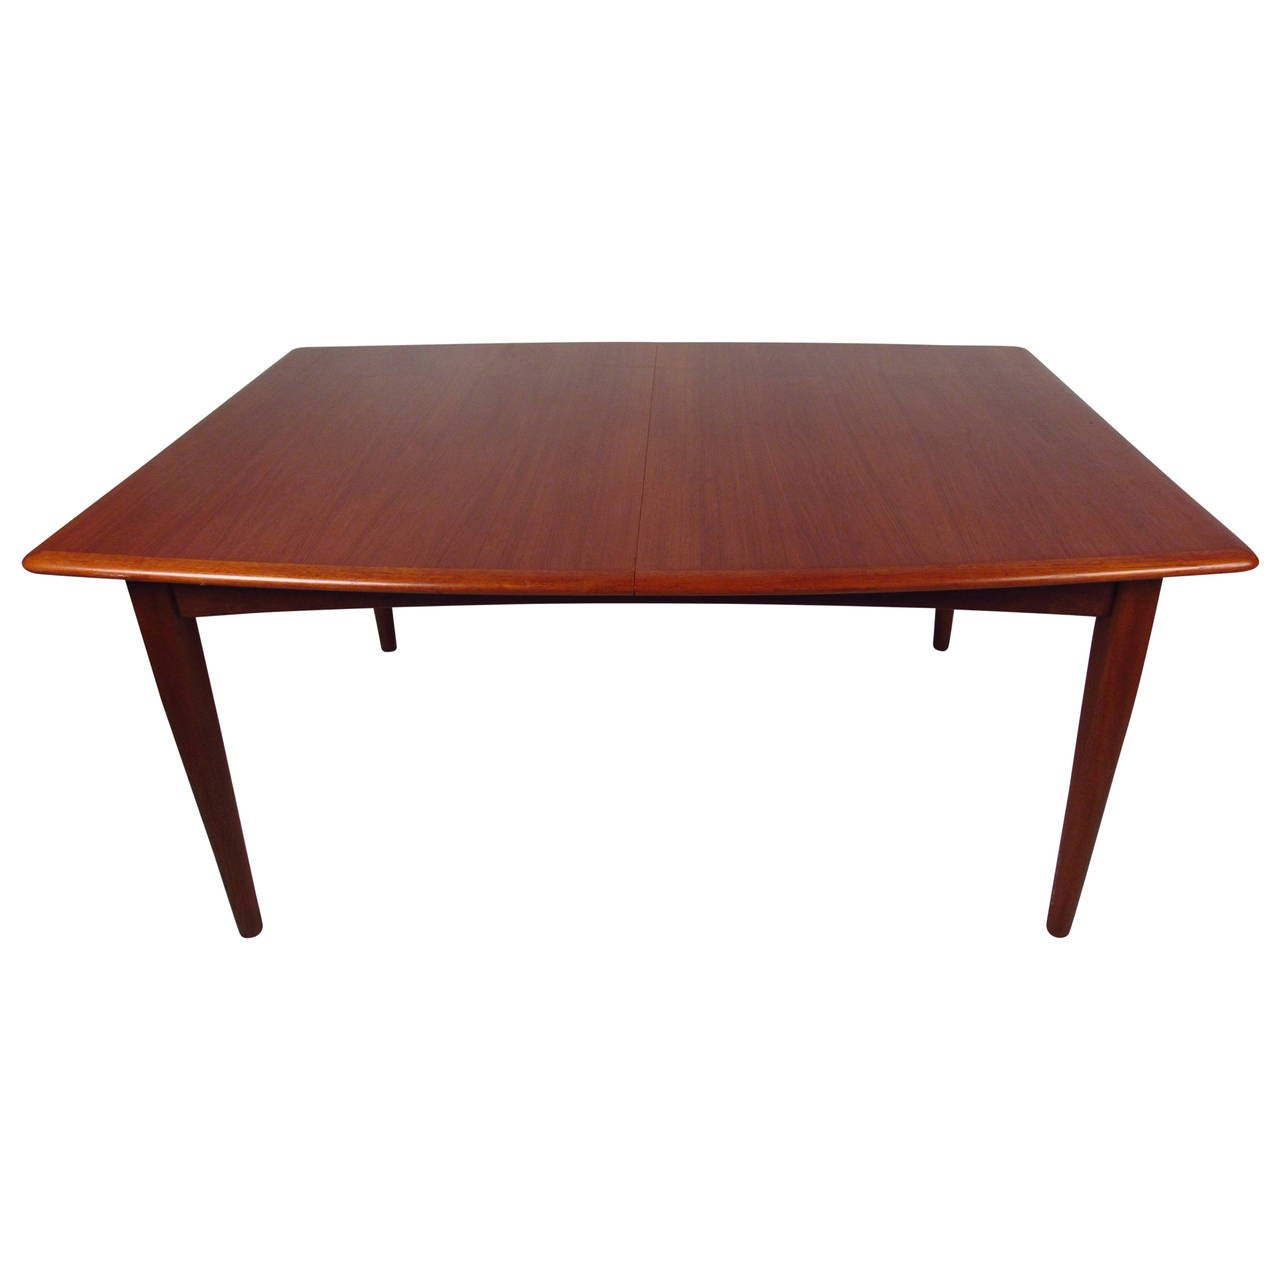 Danish modern butterfly leaf dining table at 1stdibs for Dining room tables 1940s